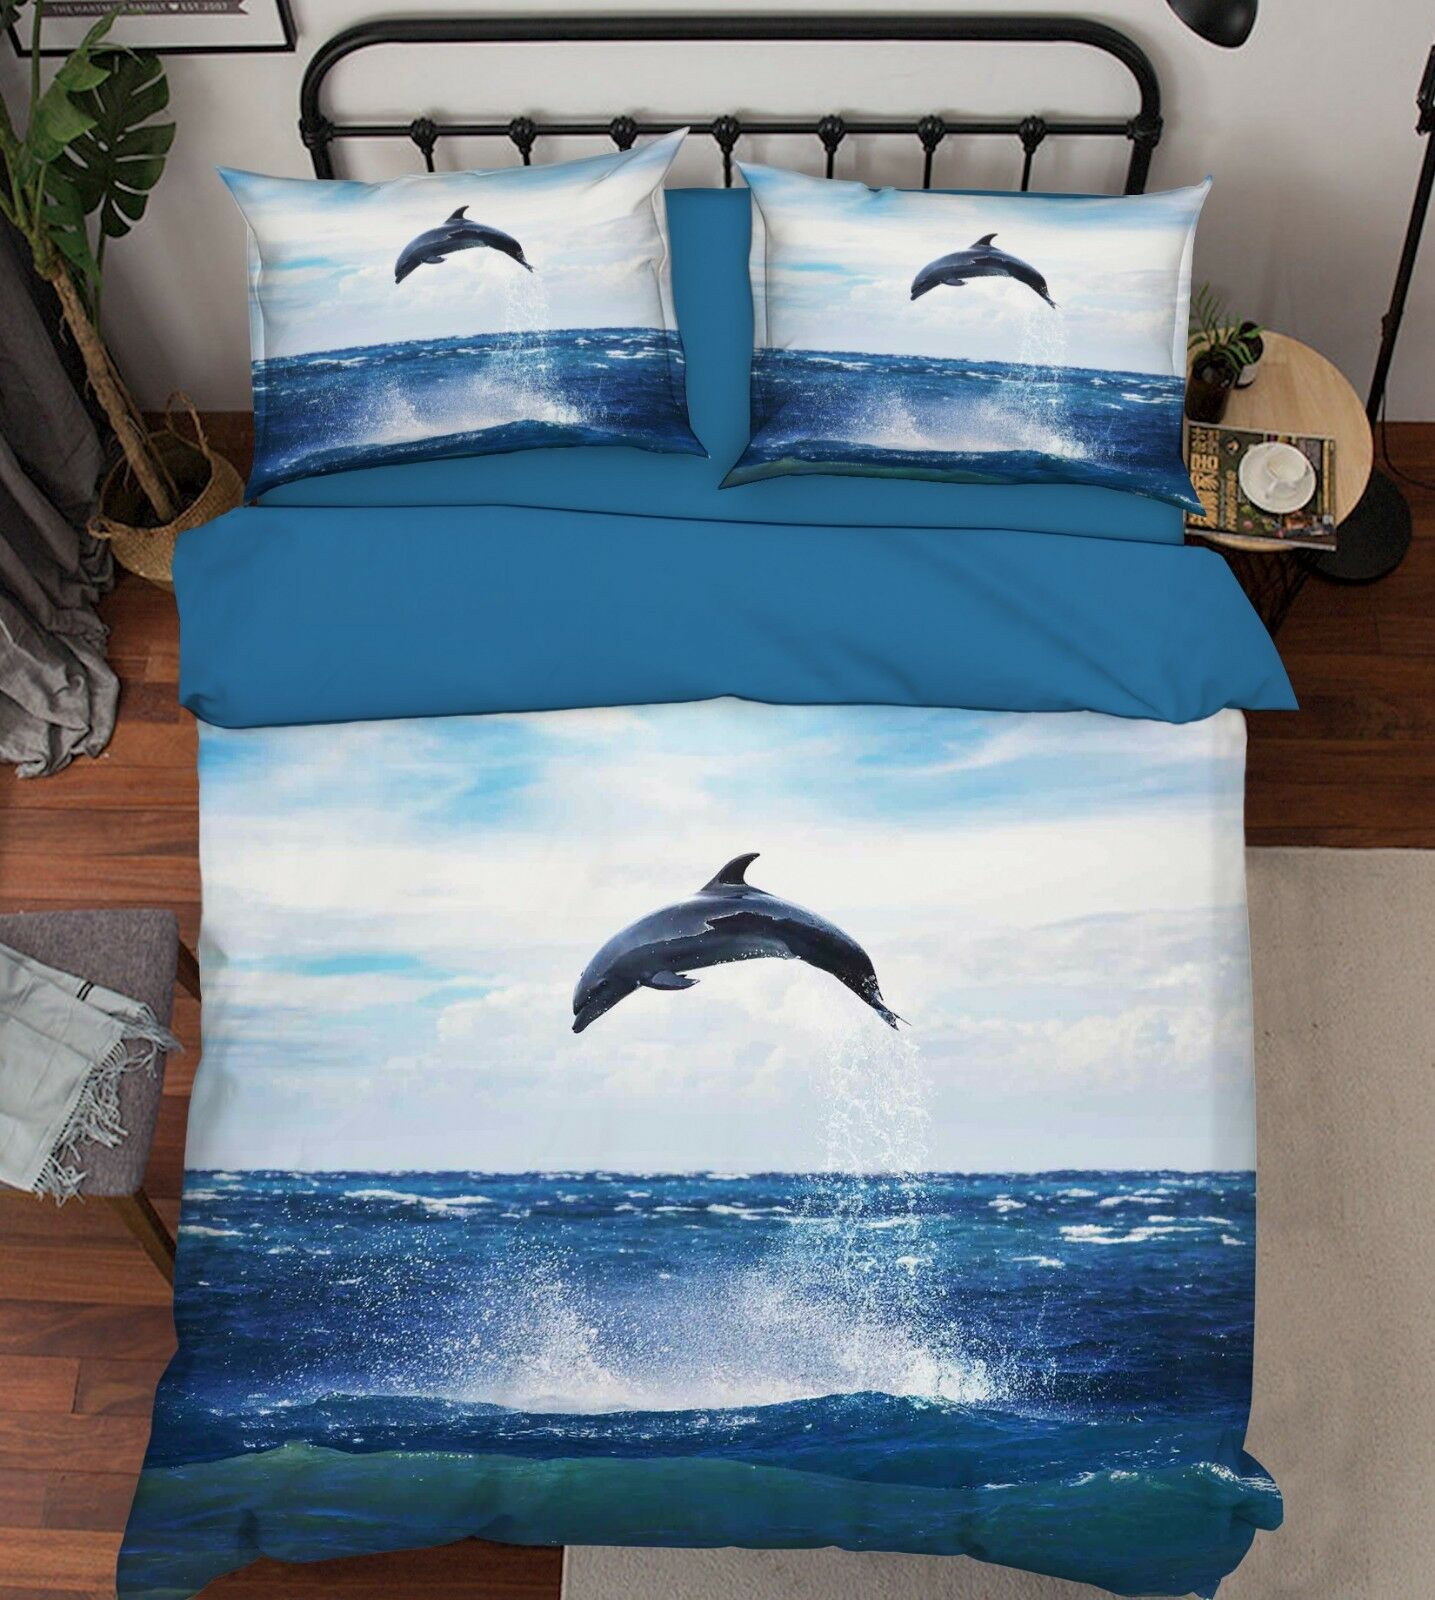 3D Sky Dolphin Sea 6 Bed Pillowcases Quilt Duvet Cover Set Single Queen AU Carly